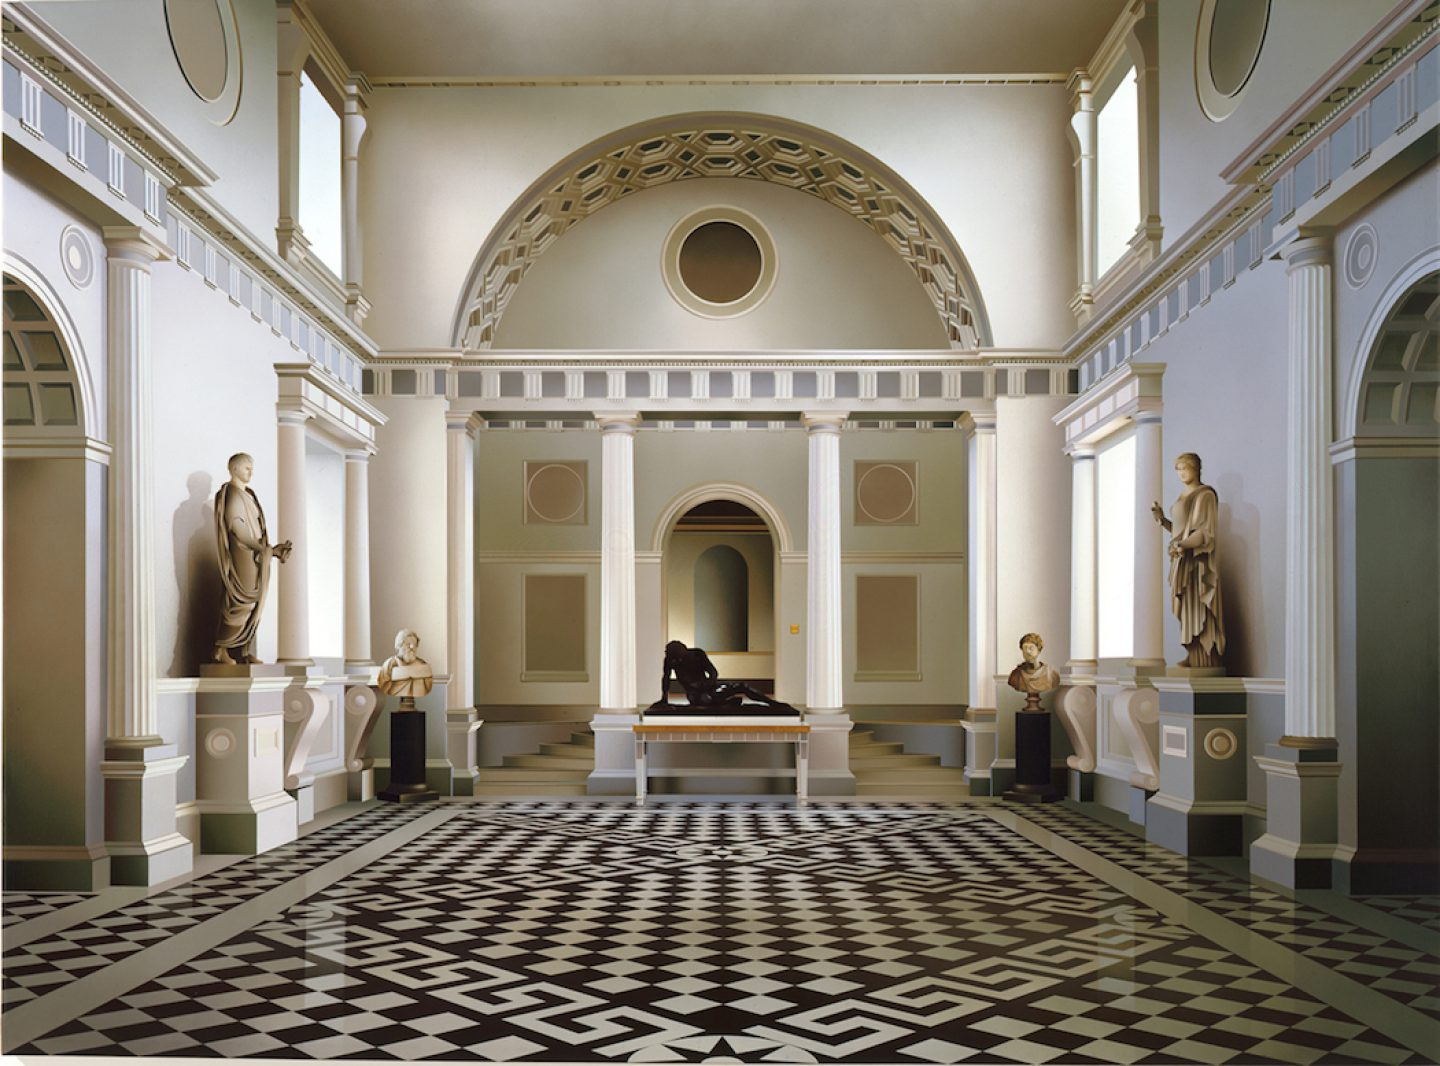 f9Ben_Johnson_Art_through_marble_halls_1996_yatzer